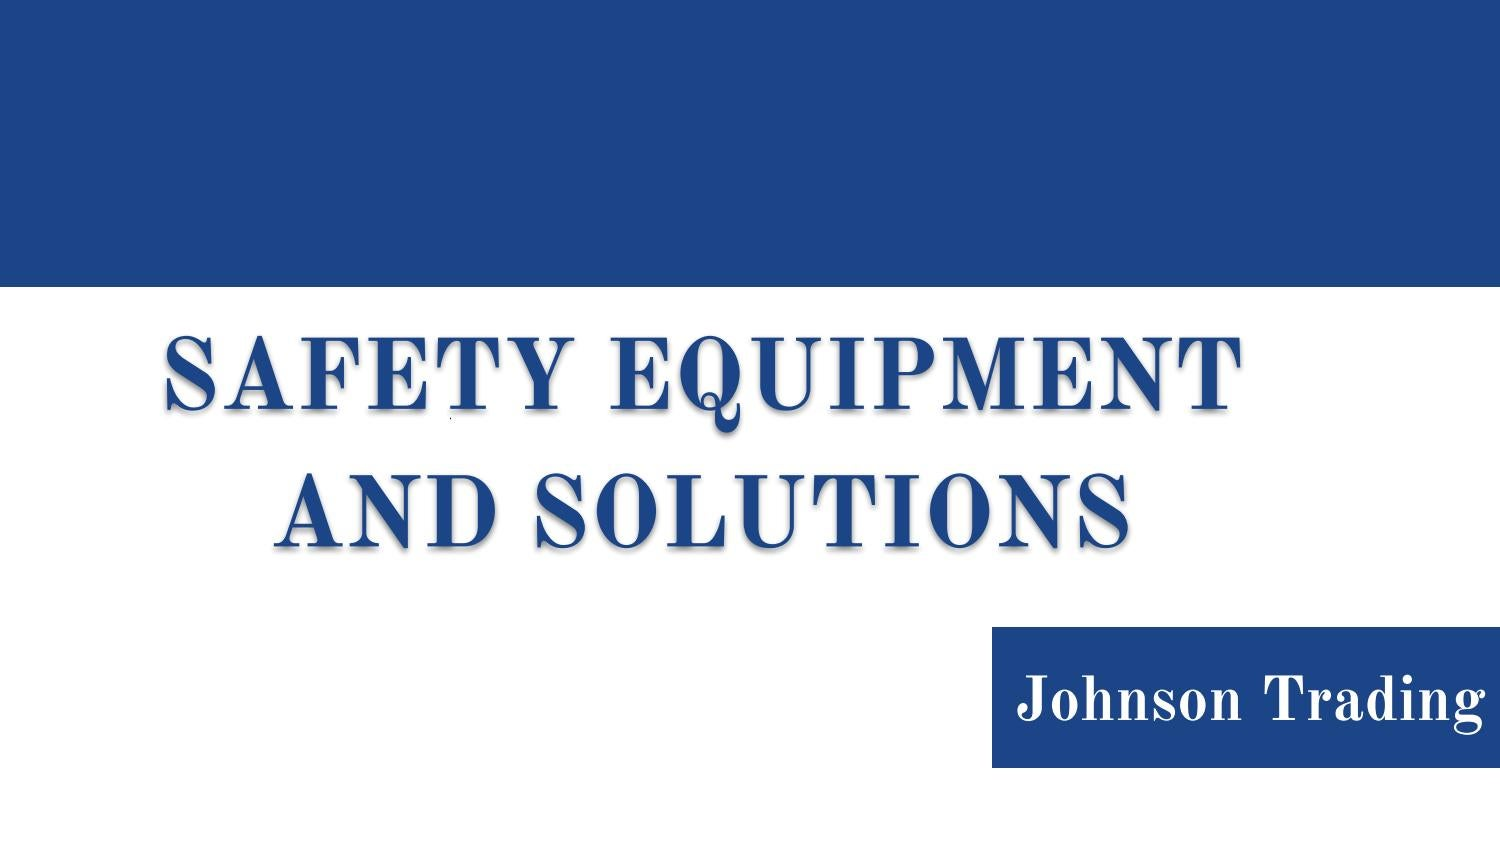 Safety Equipment Suppliers | Johnson Trading Sharjah, UAE by Johnson